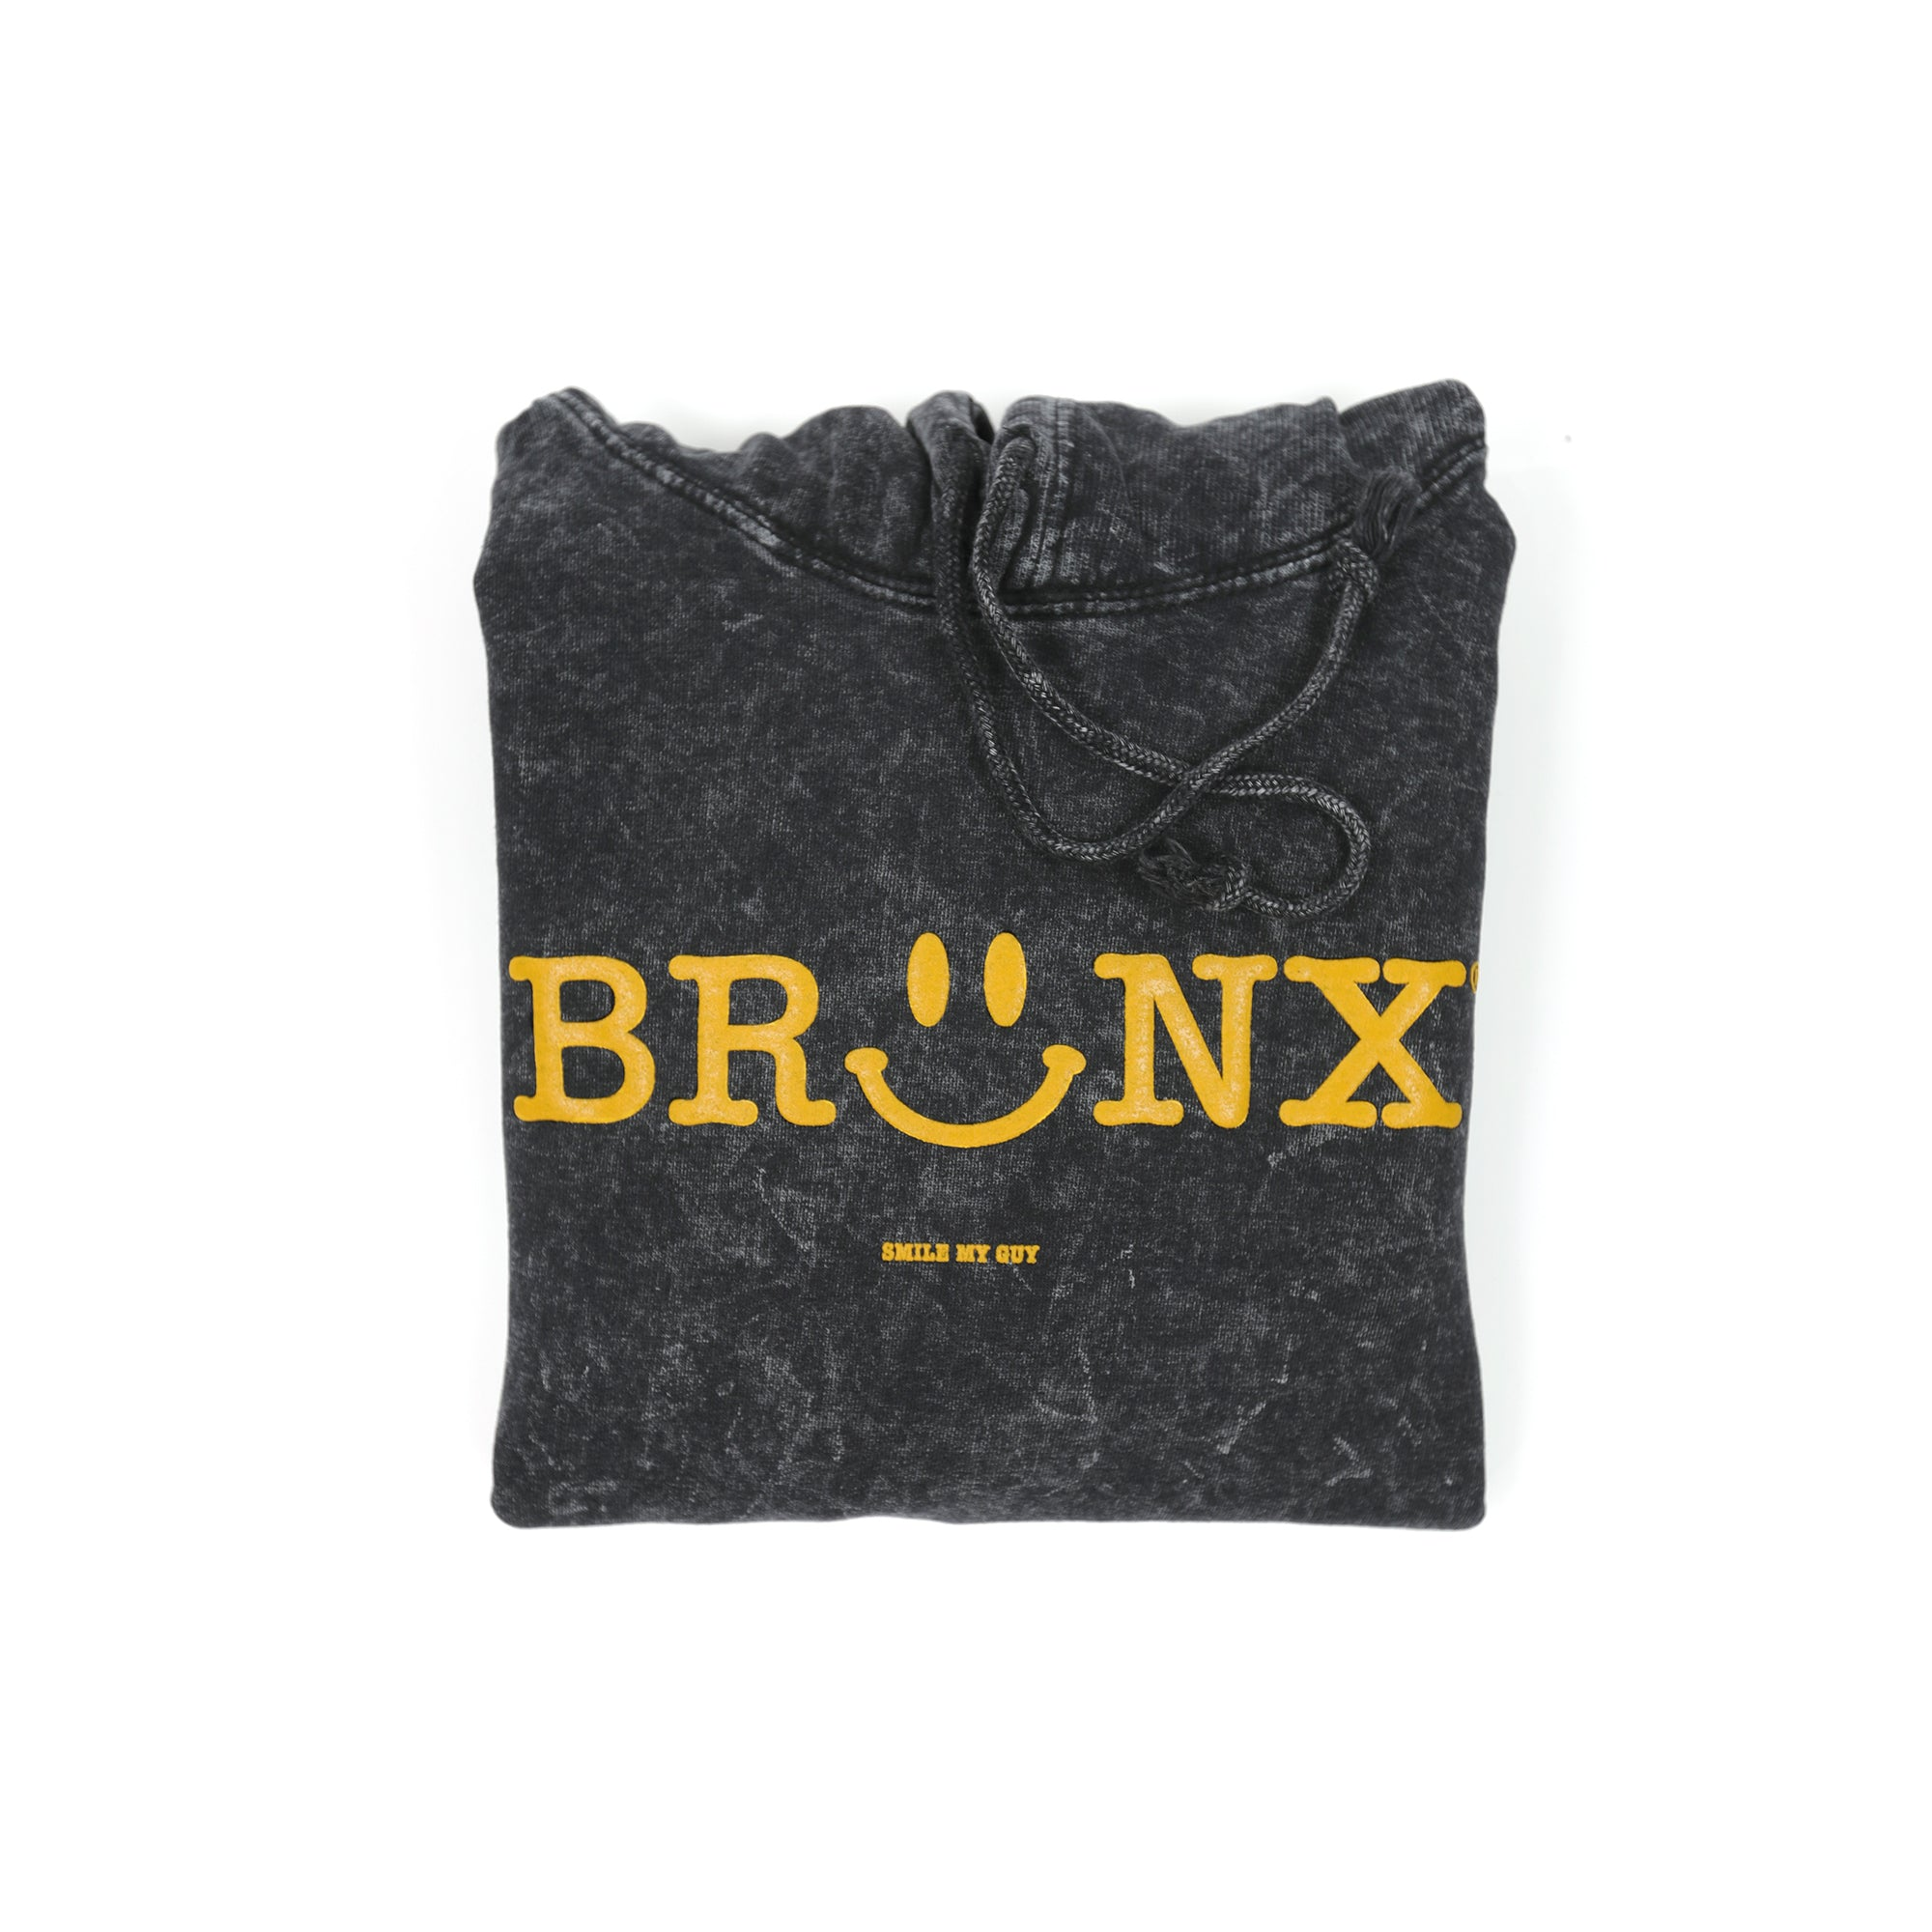 Bronx Smiley - Black Mineral-Wash Hoodie